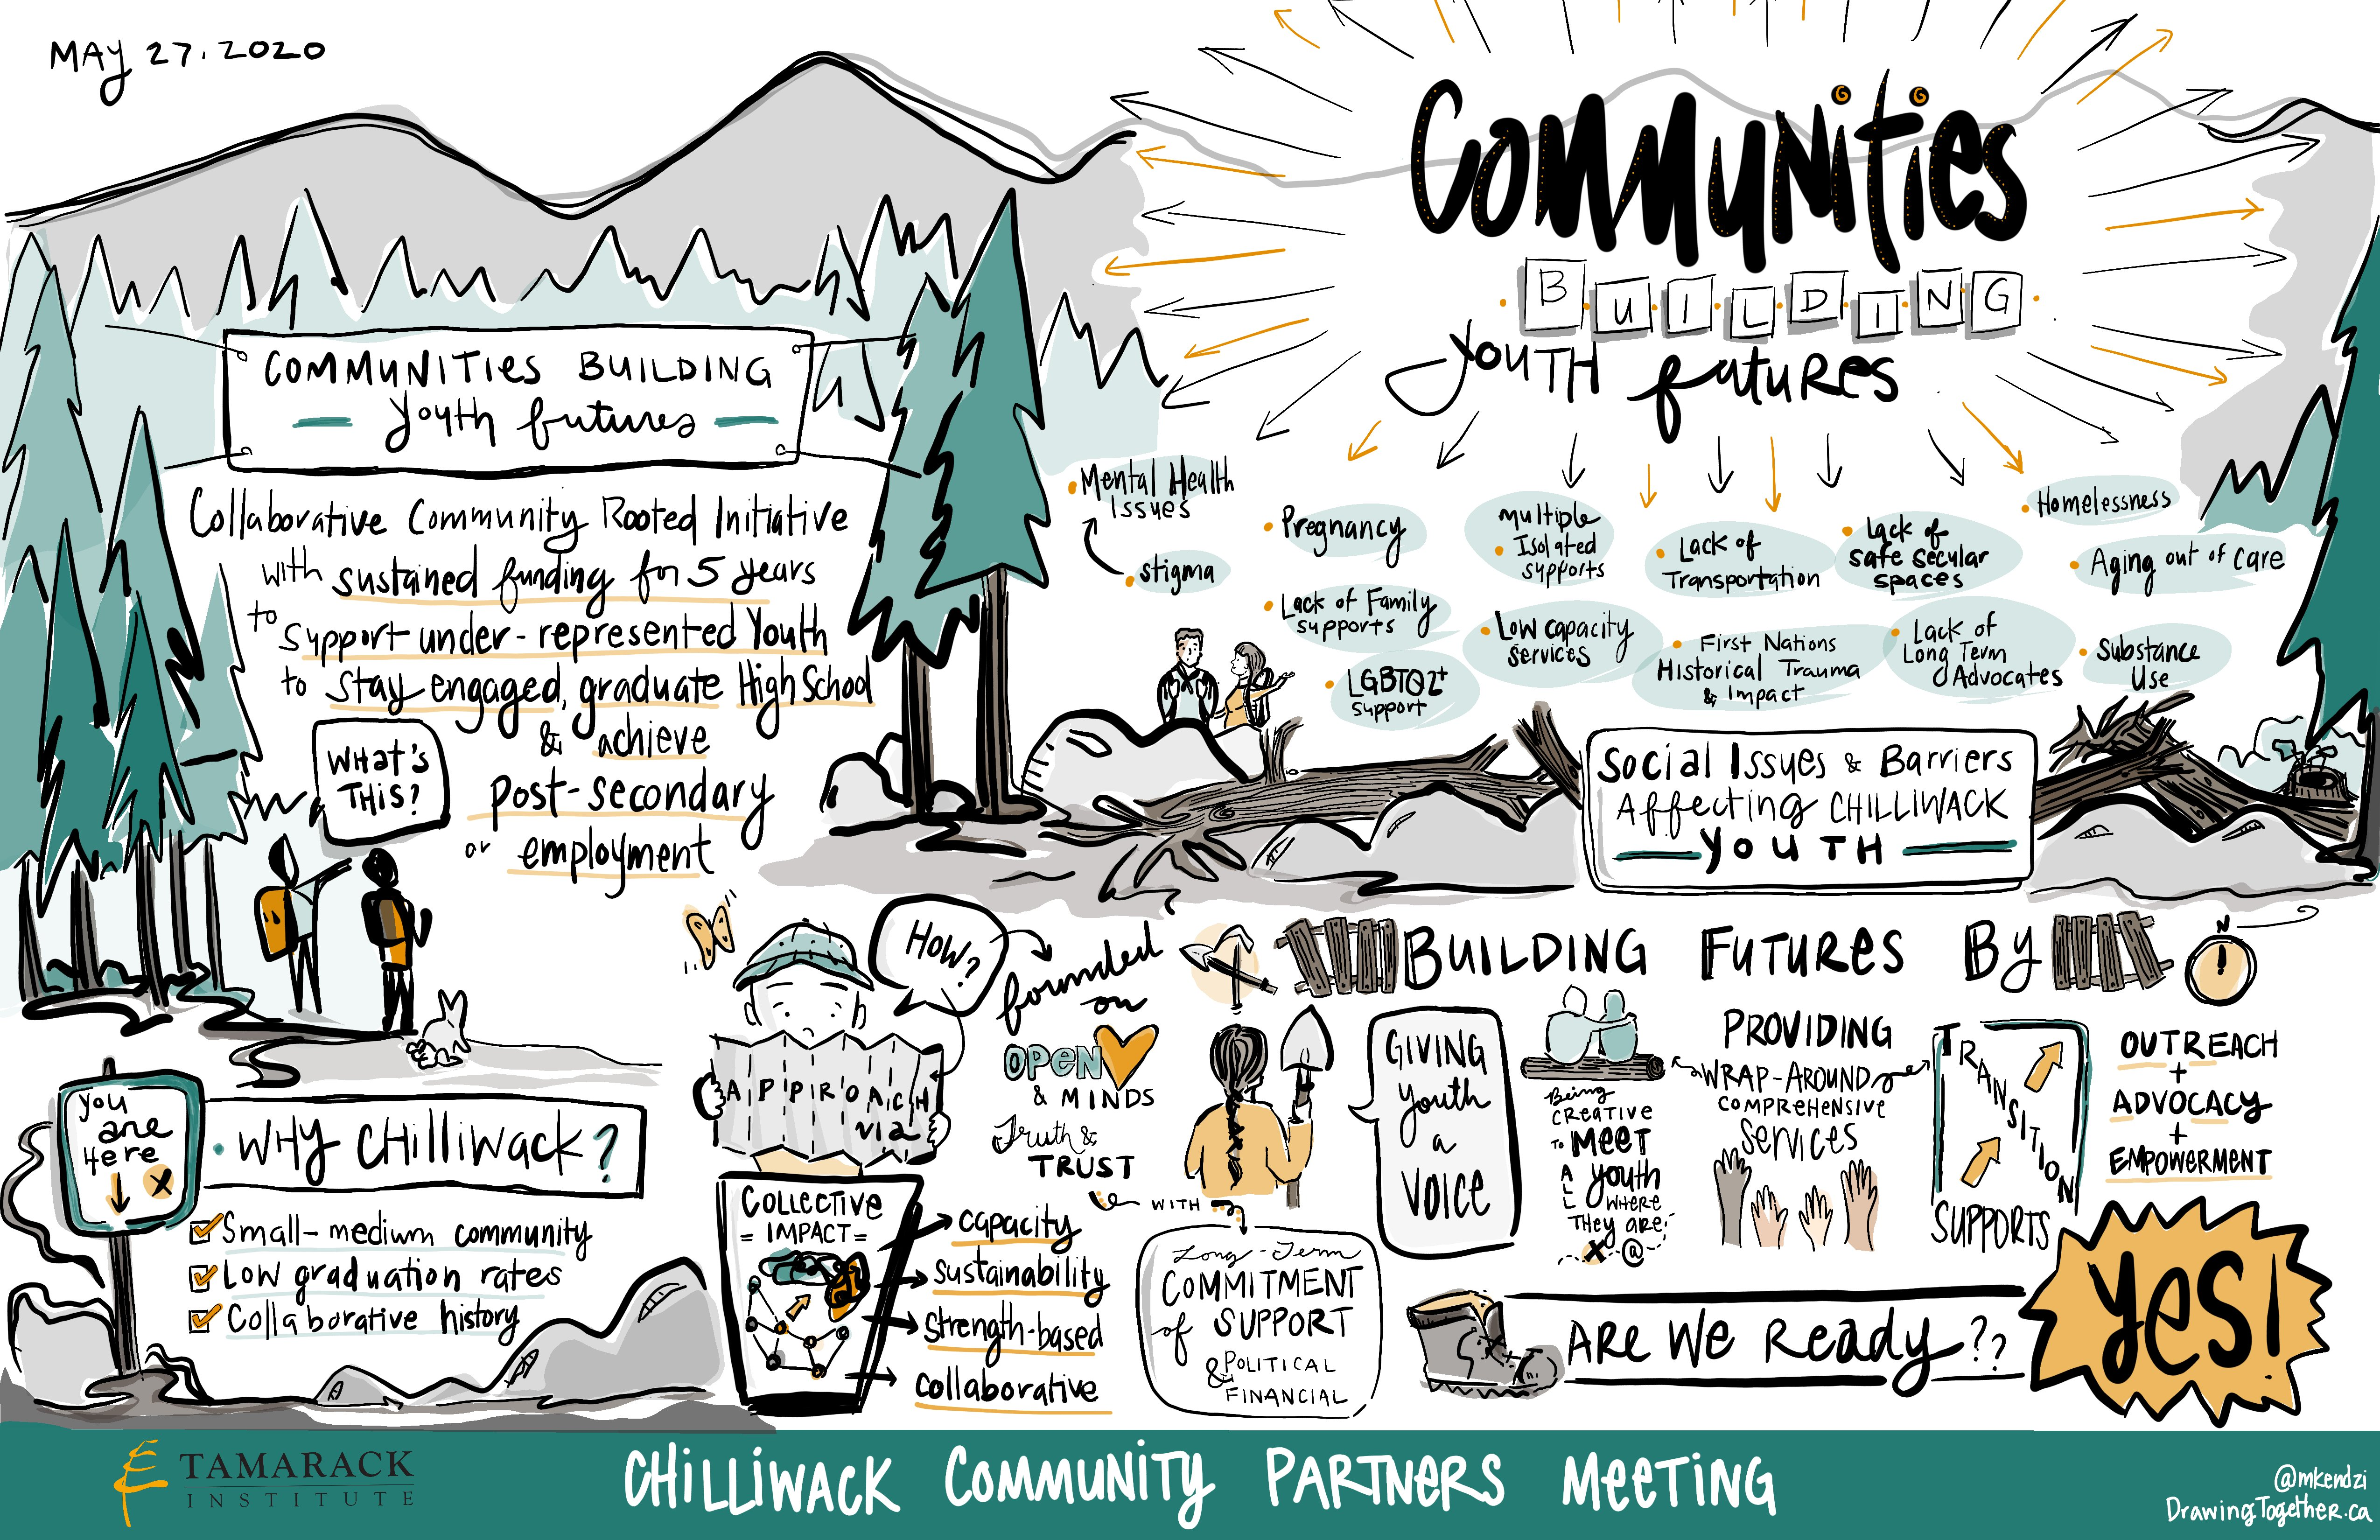 2020-06-02 - Communities Building Youth Futures - Graphic Record (2)